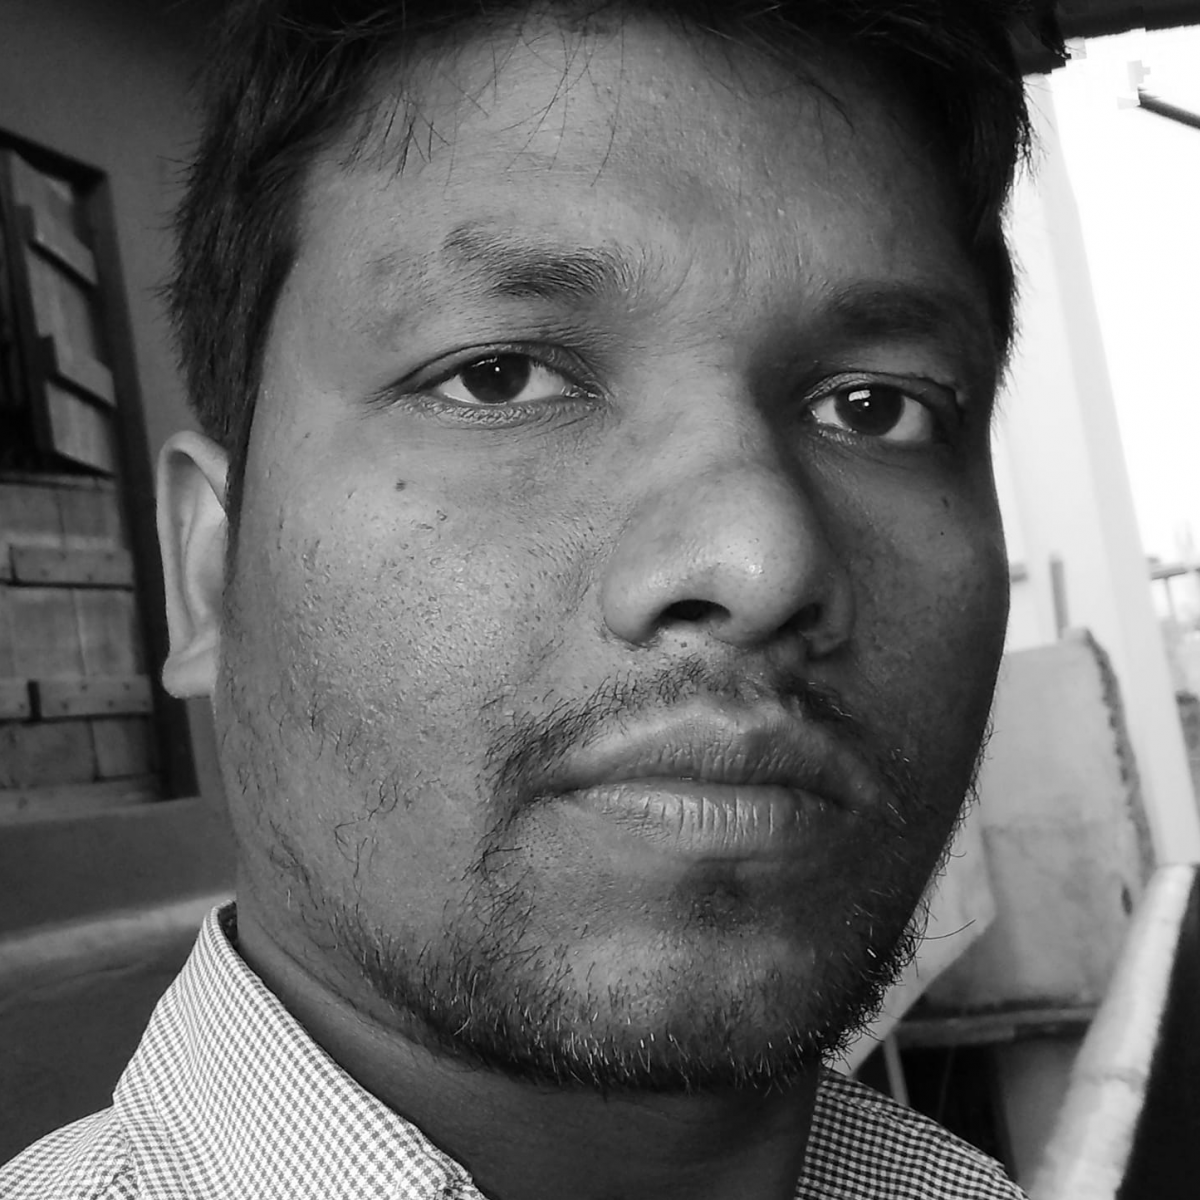 Umesh Kumar Ray